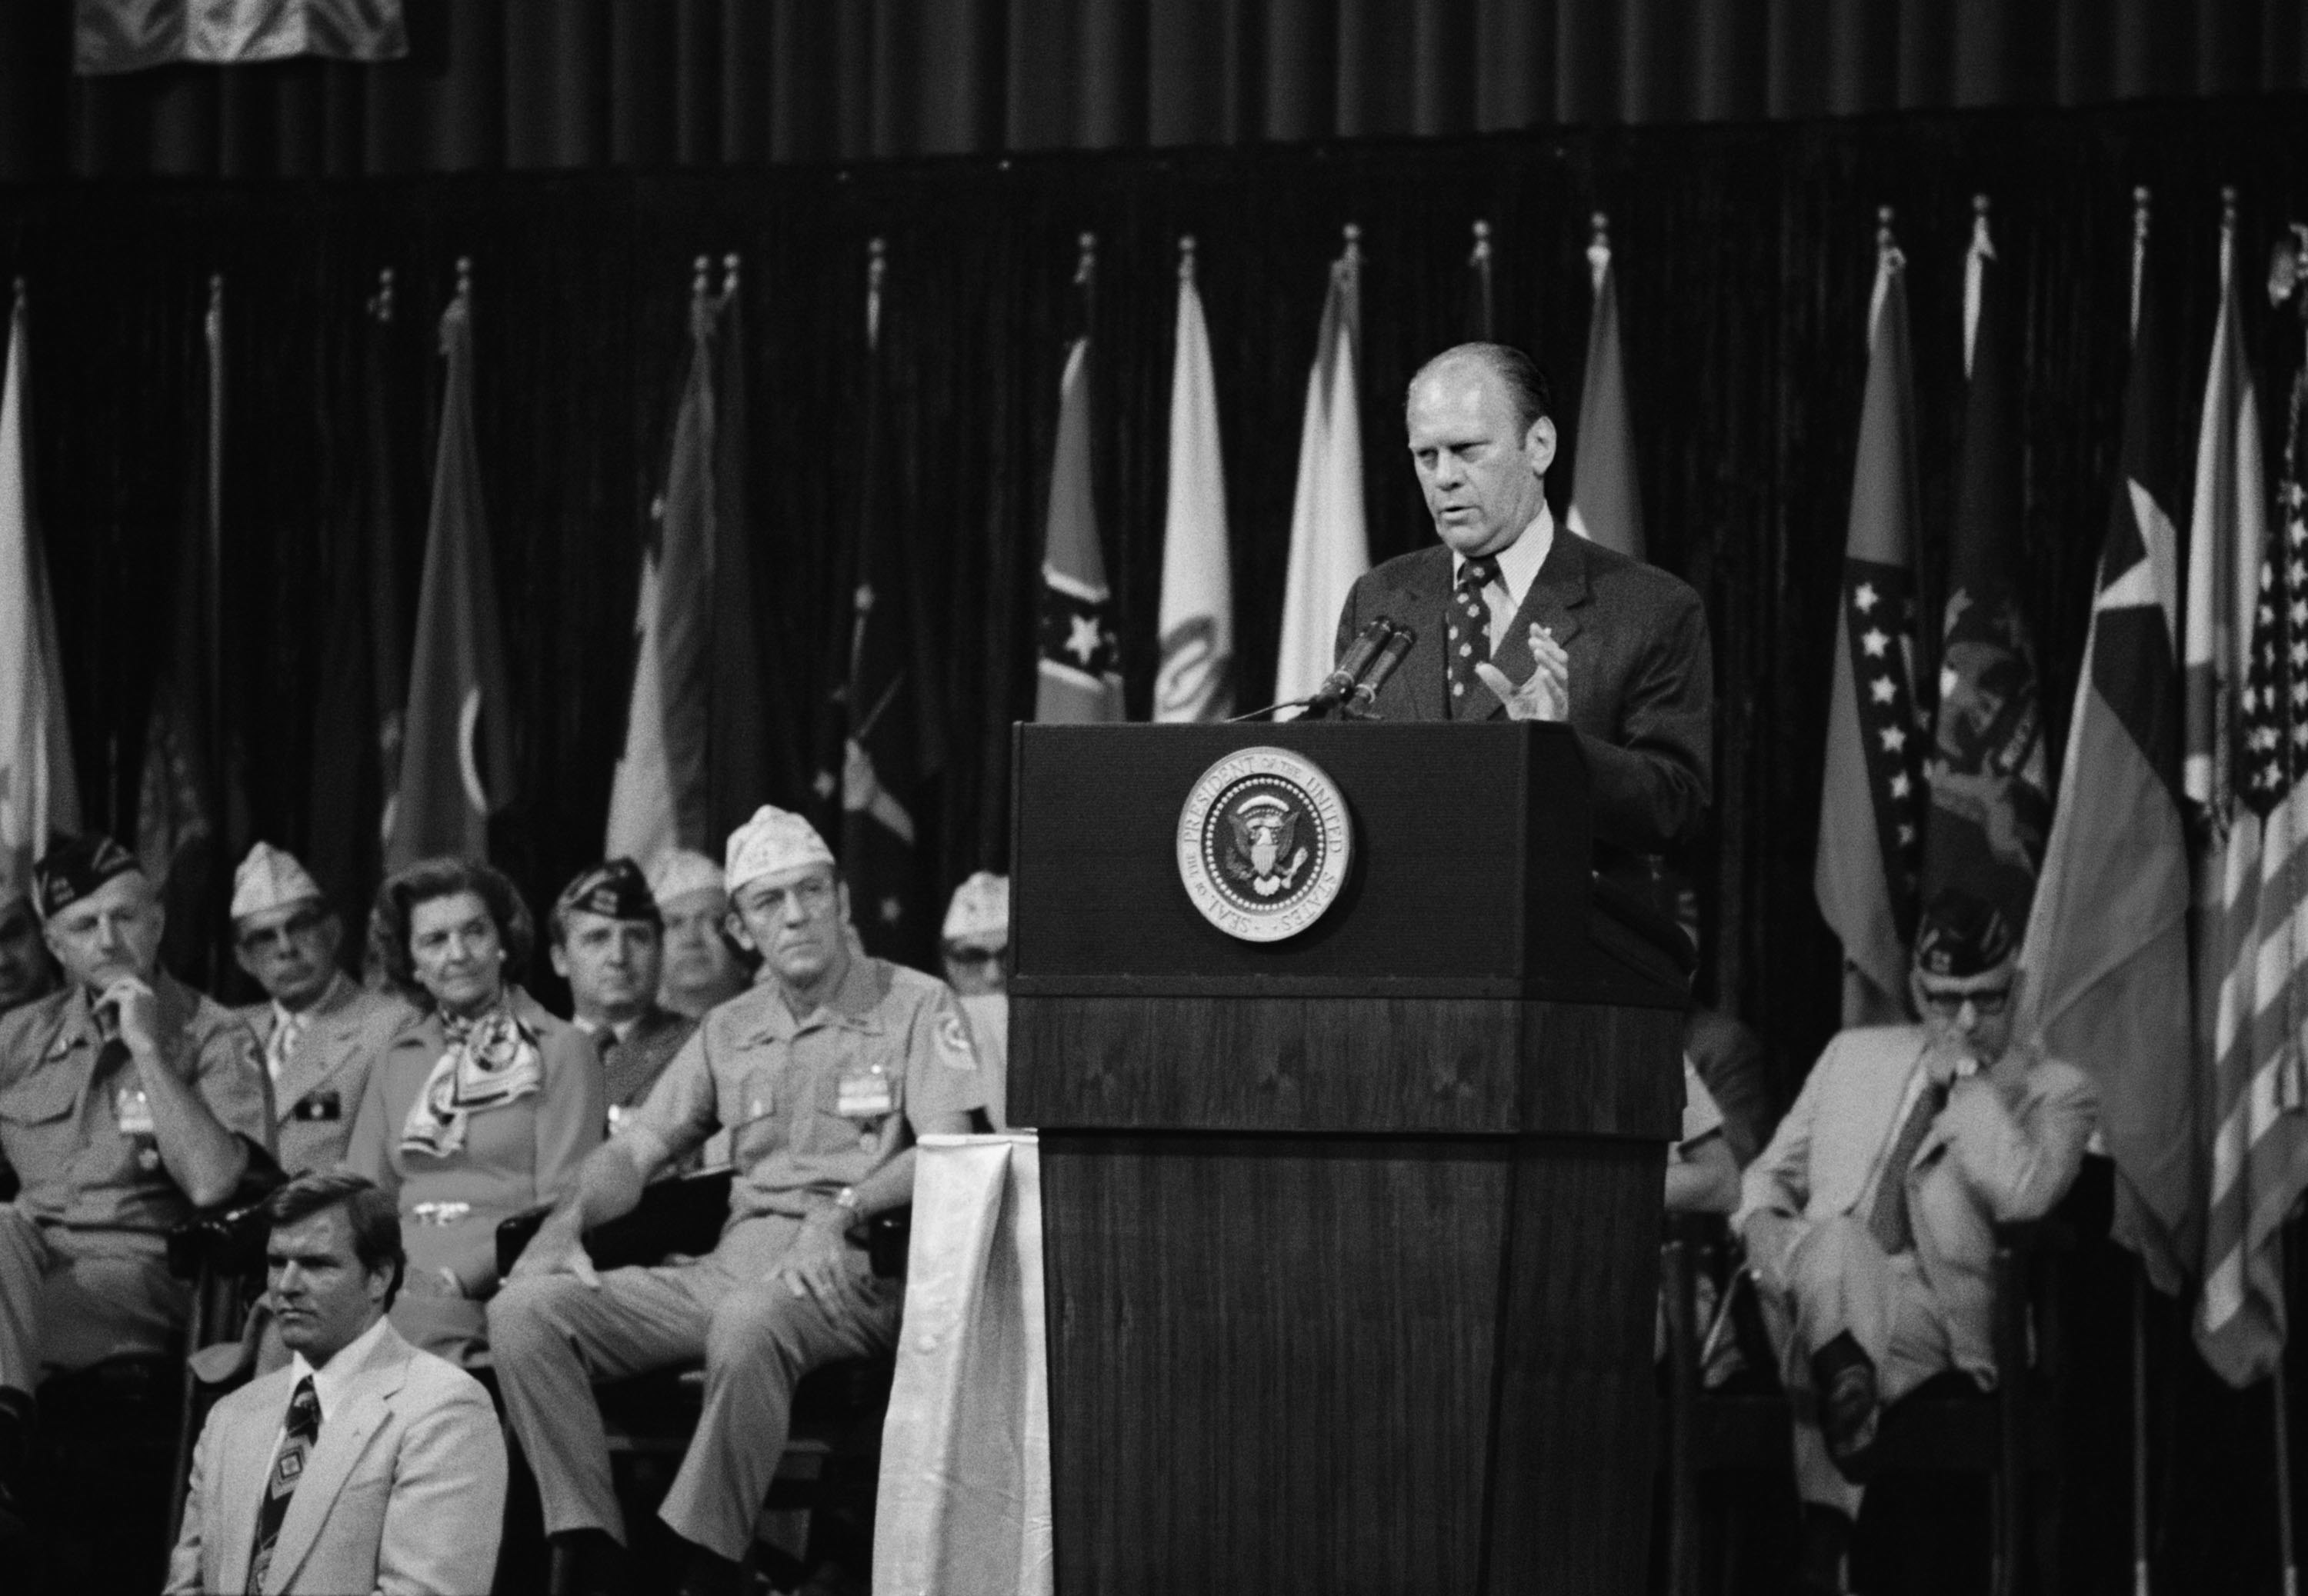 President Gerald Ford speaking onstage at a podium with uniformed service members seated behind him, circa 1974.